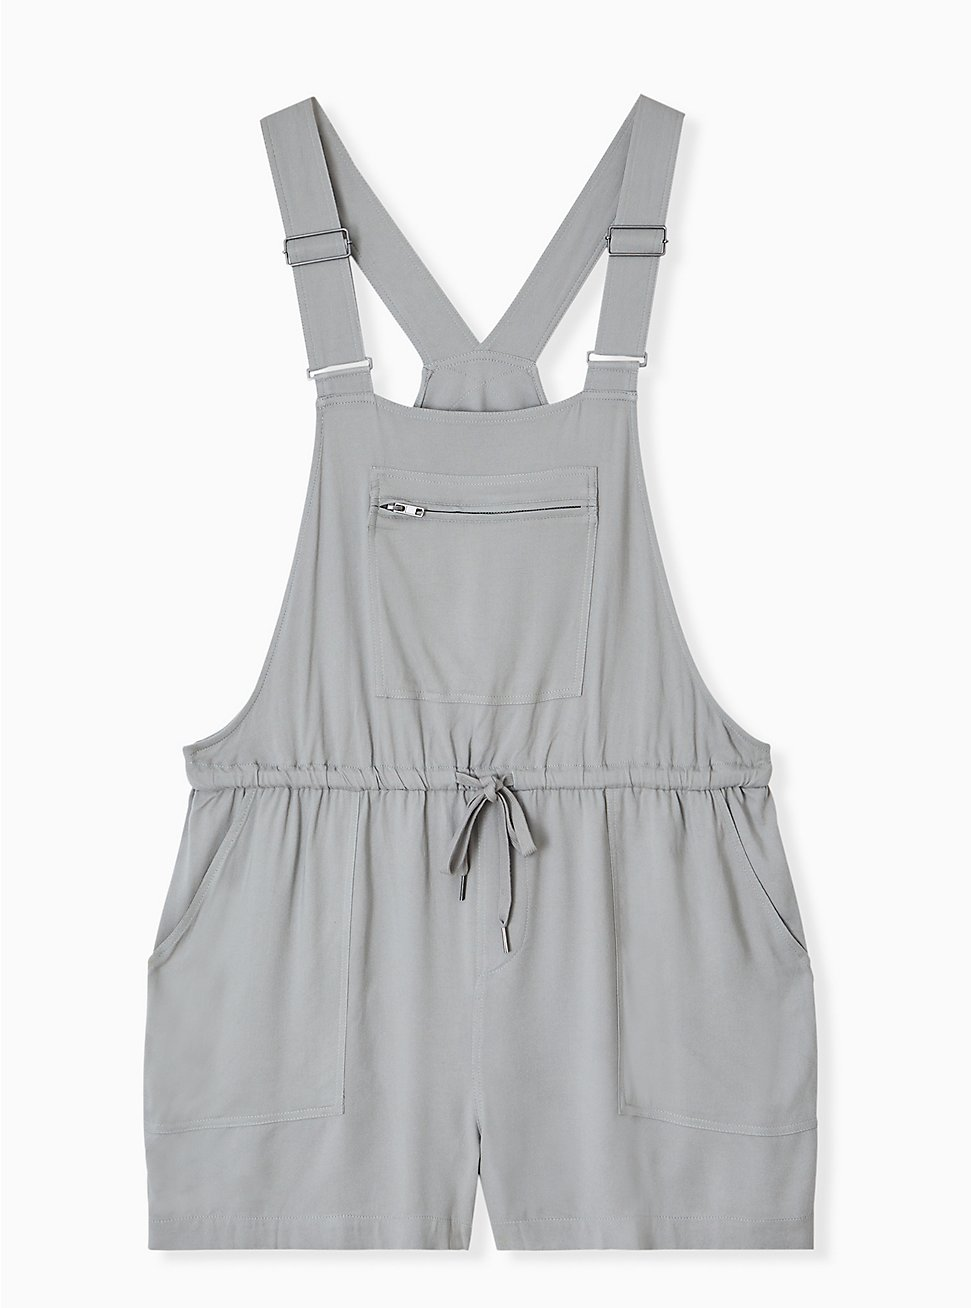 Plus Size Drawstring Shortall - Twill Grey, MOON MIST, hi-res